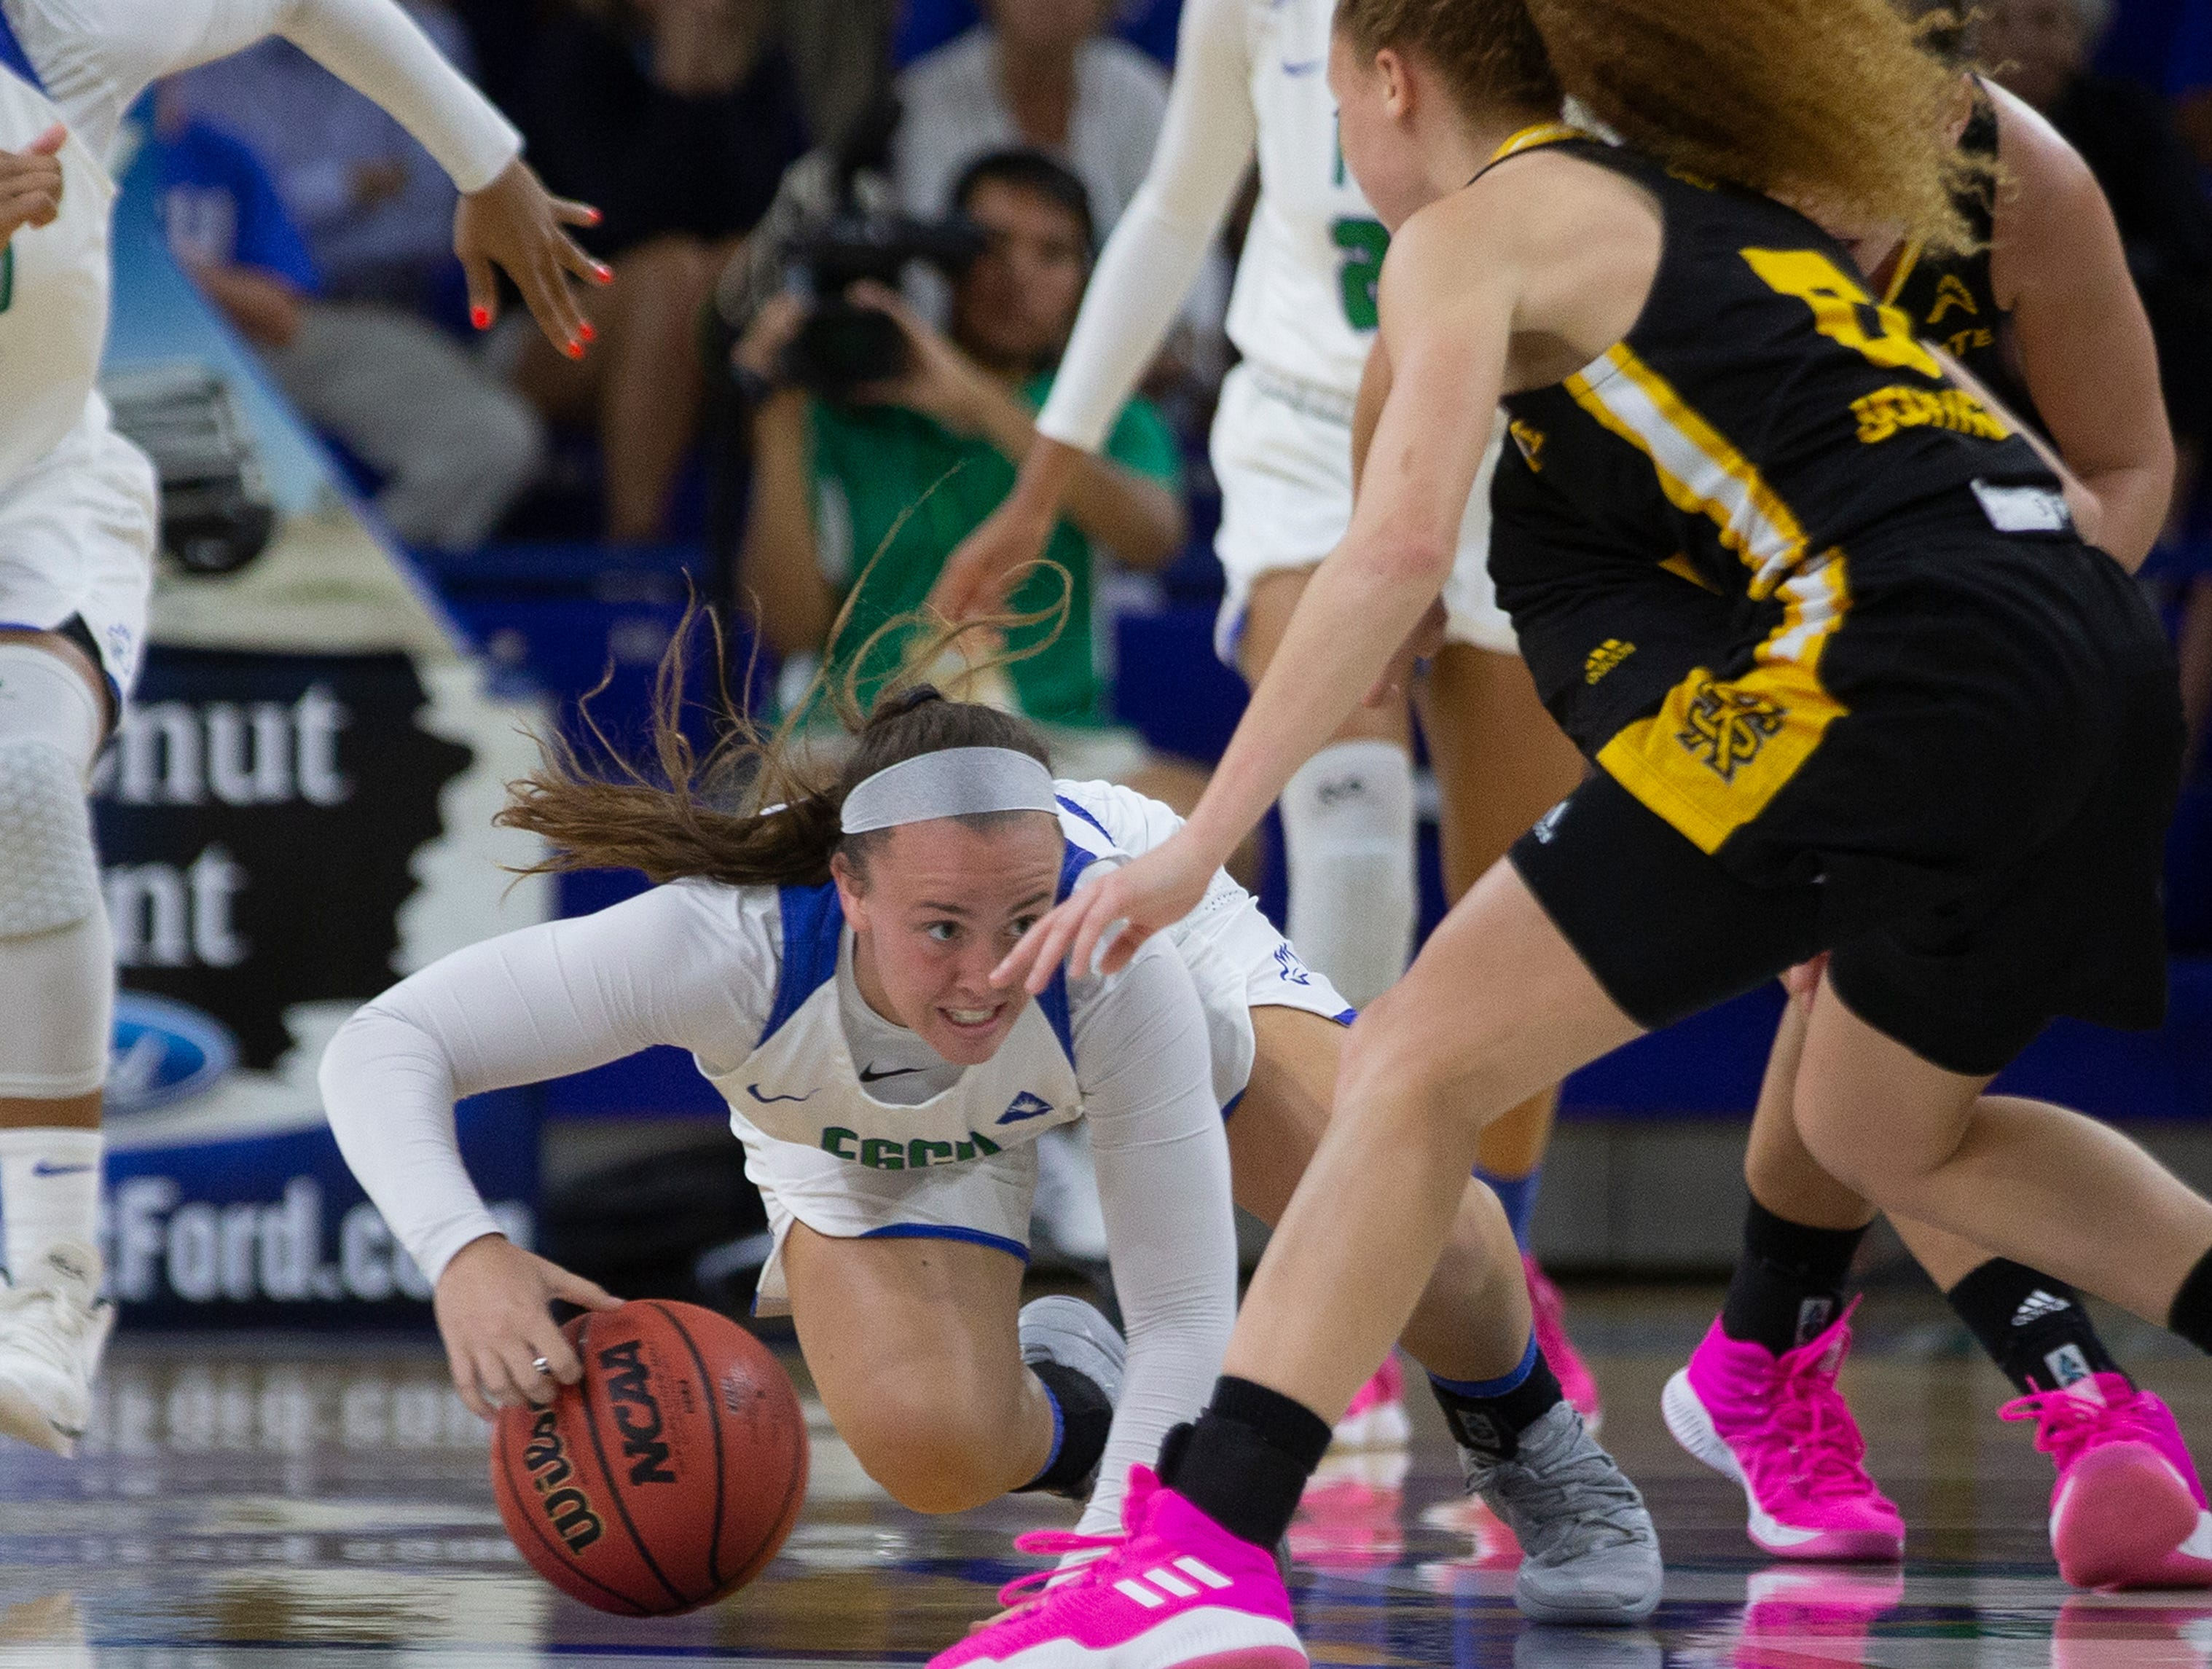 Florida Gulf Coast University's Chandler Ryan dives for the lose ball during their game against Kennesaw State, Wednesday, March 13, 2019, at Florida Gulf Coast University's Alico Arena.